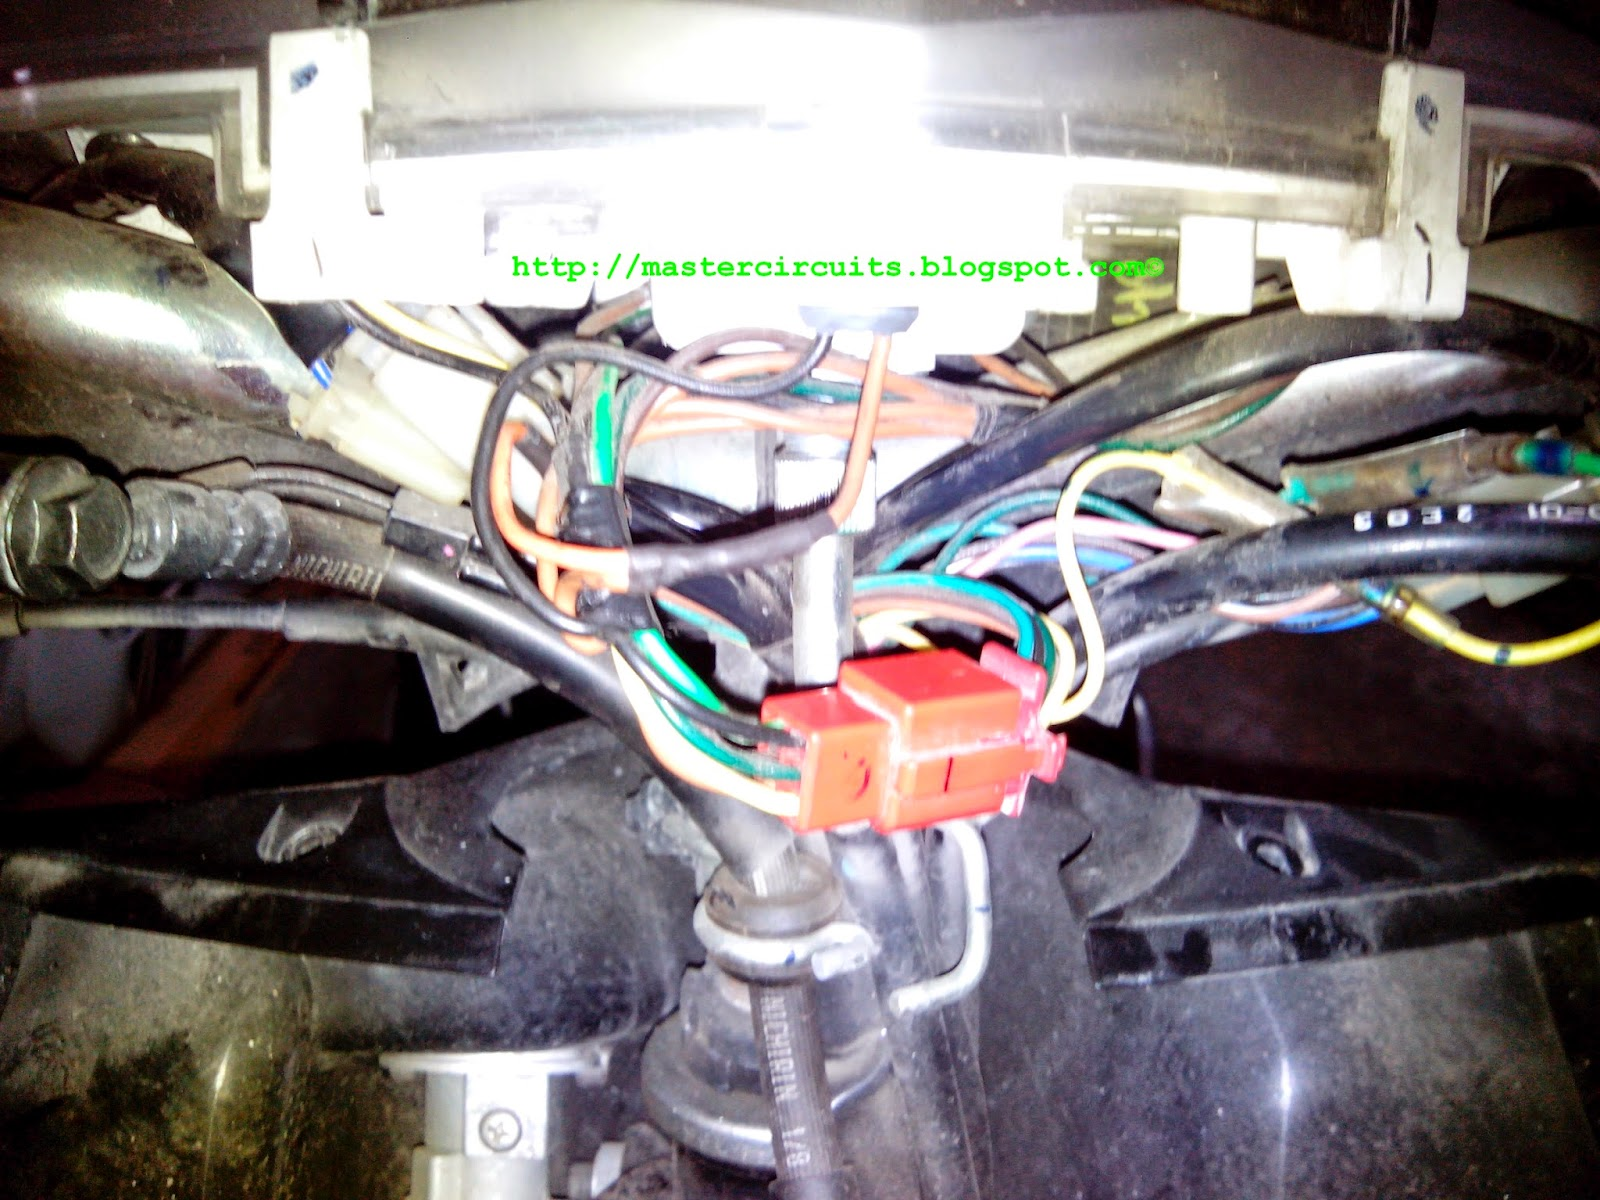 yamaha mio soul led headlight conversion techy at day blogger mio soul is the easiest one to convert since the panel lights was already dc isolating the wire the has the ac driven source for park and headlight and